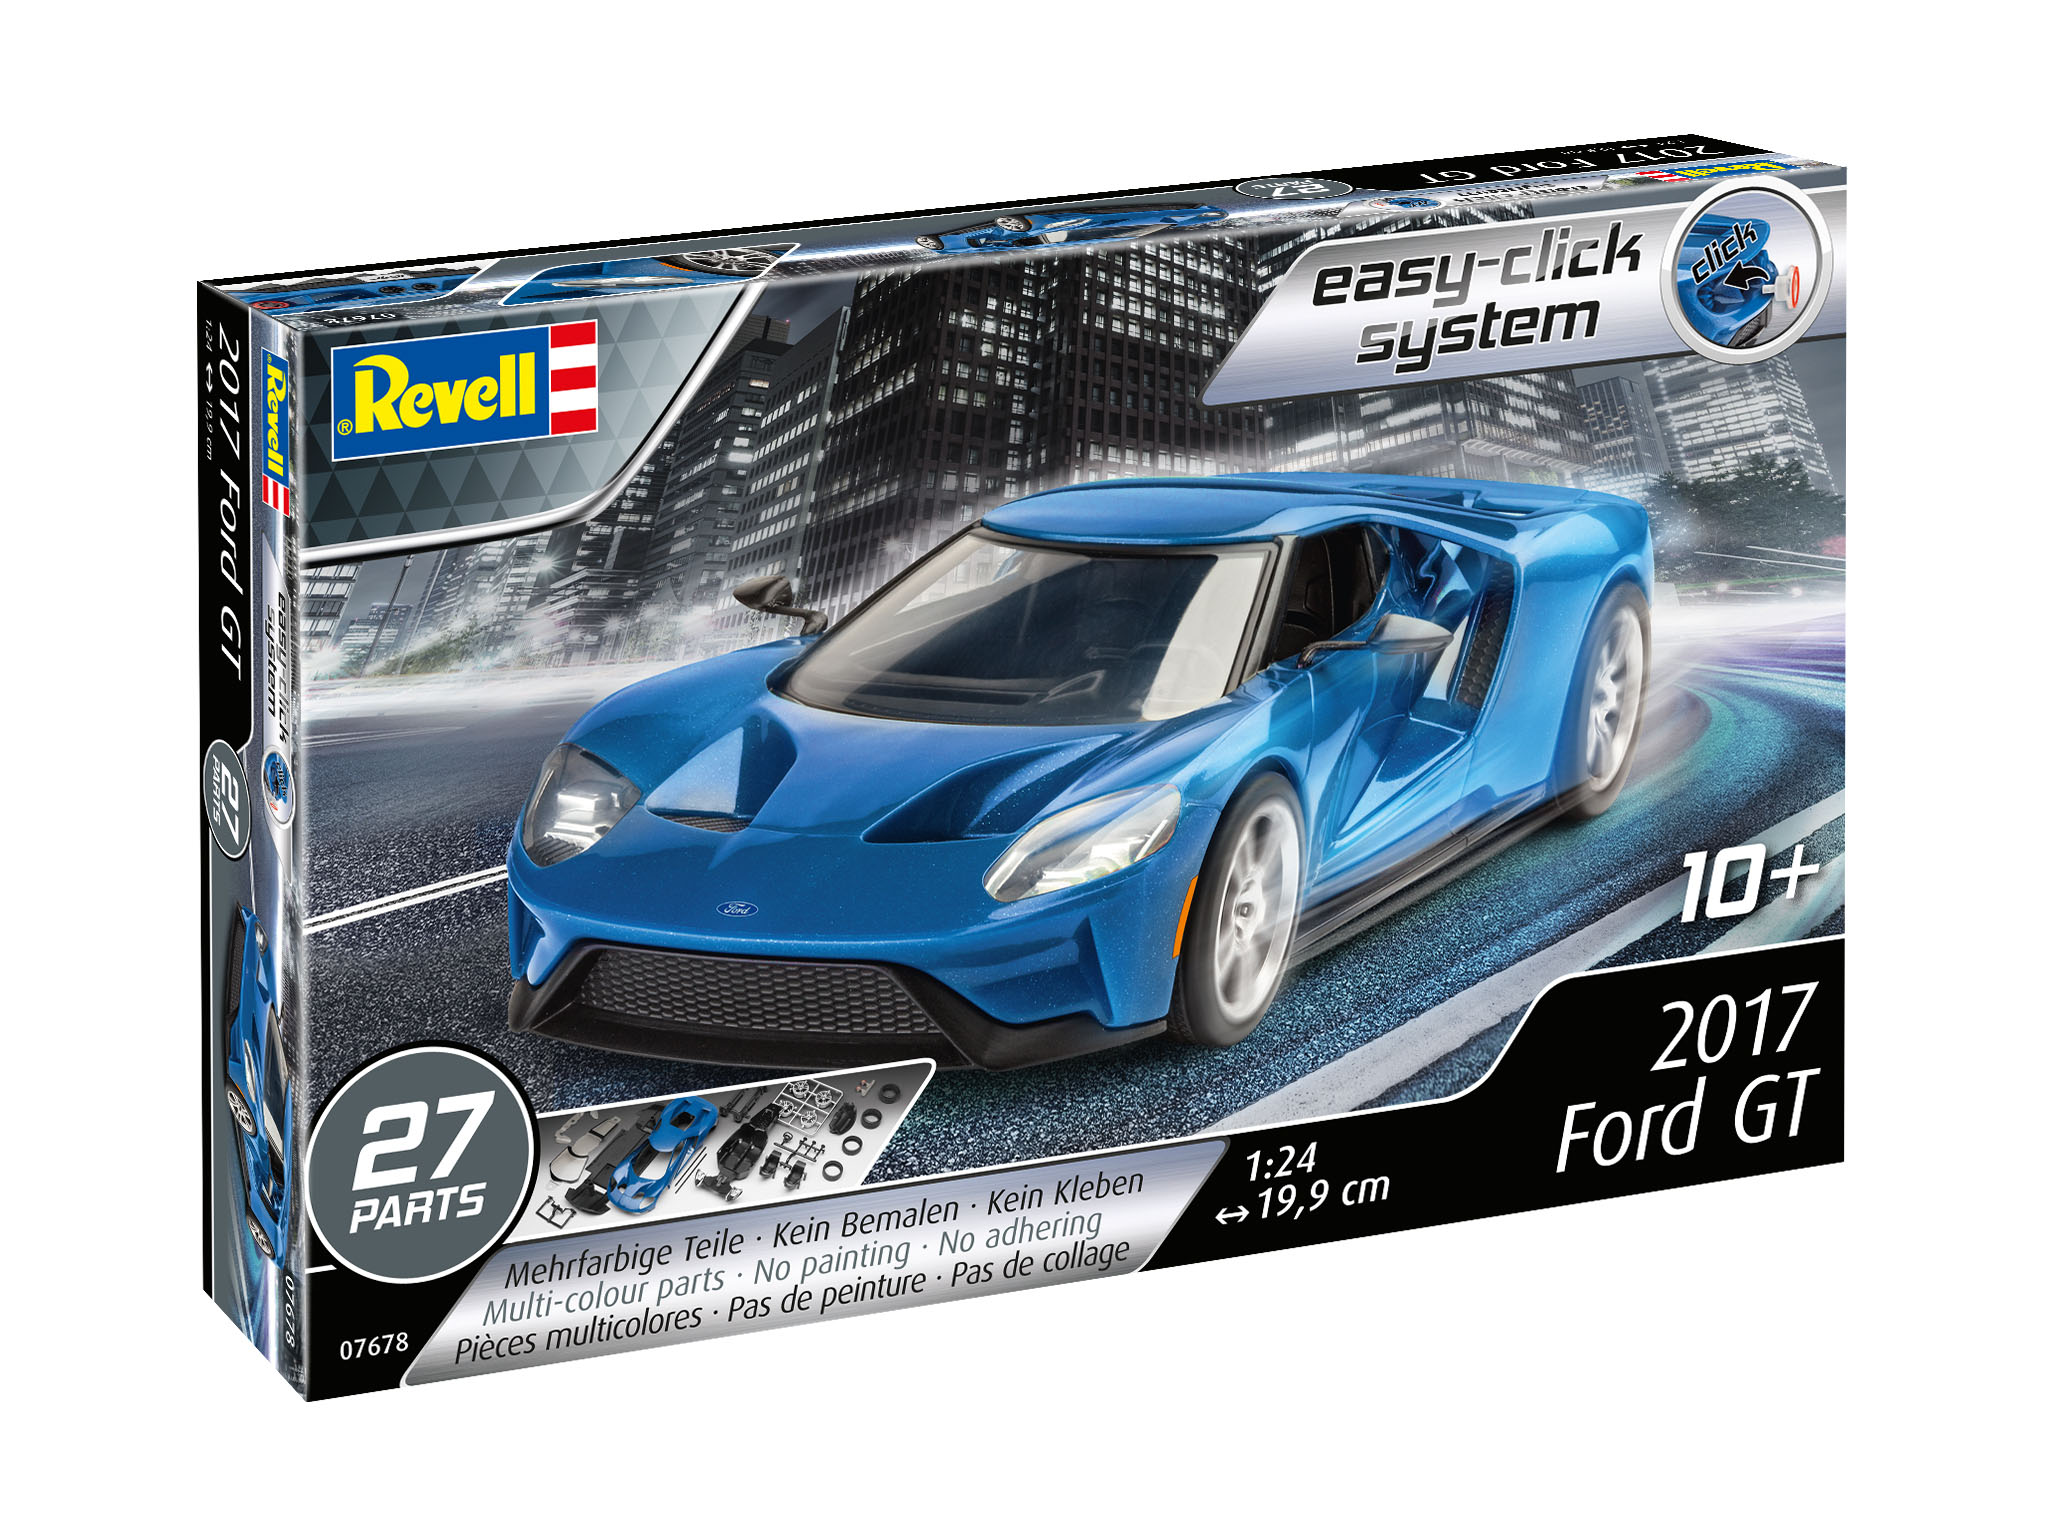 Modellbau - 3D Puzzle Easy Click System - 2017 Ford GT